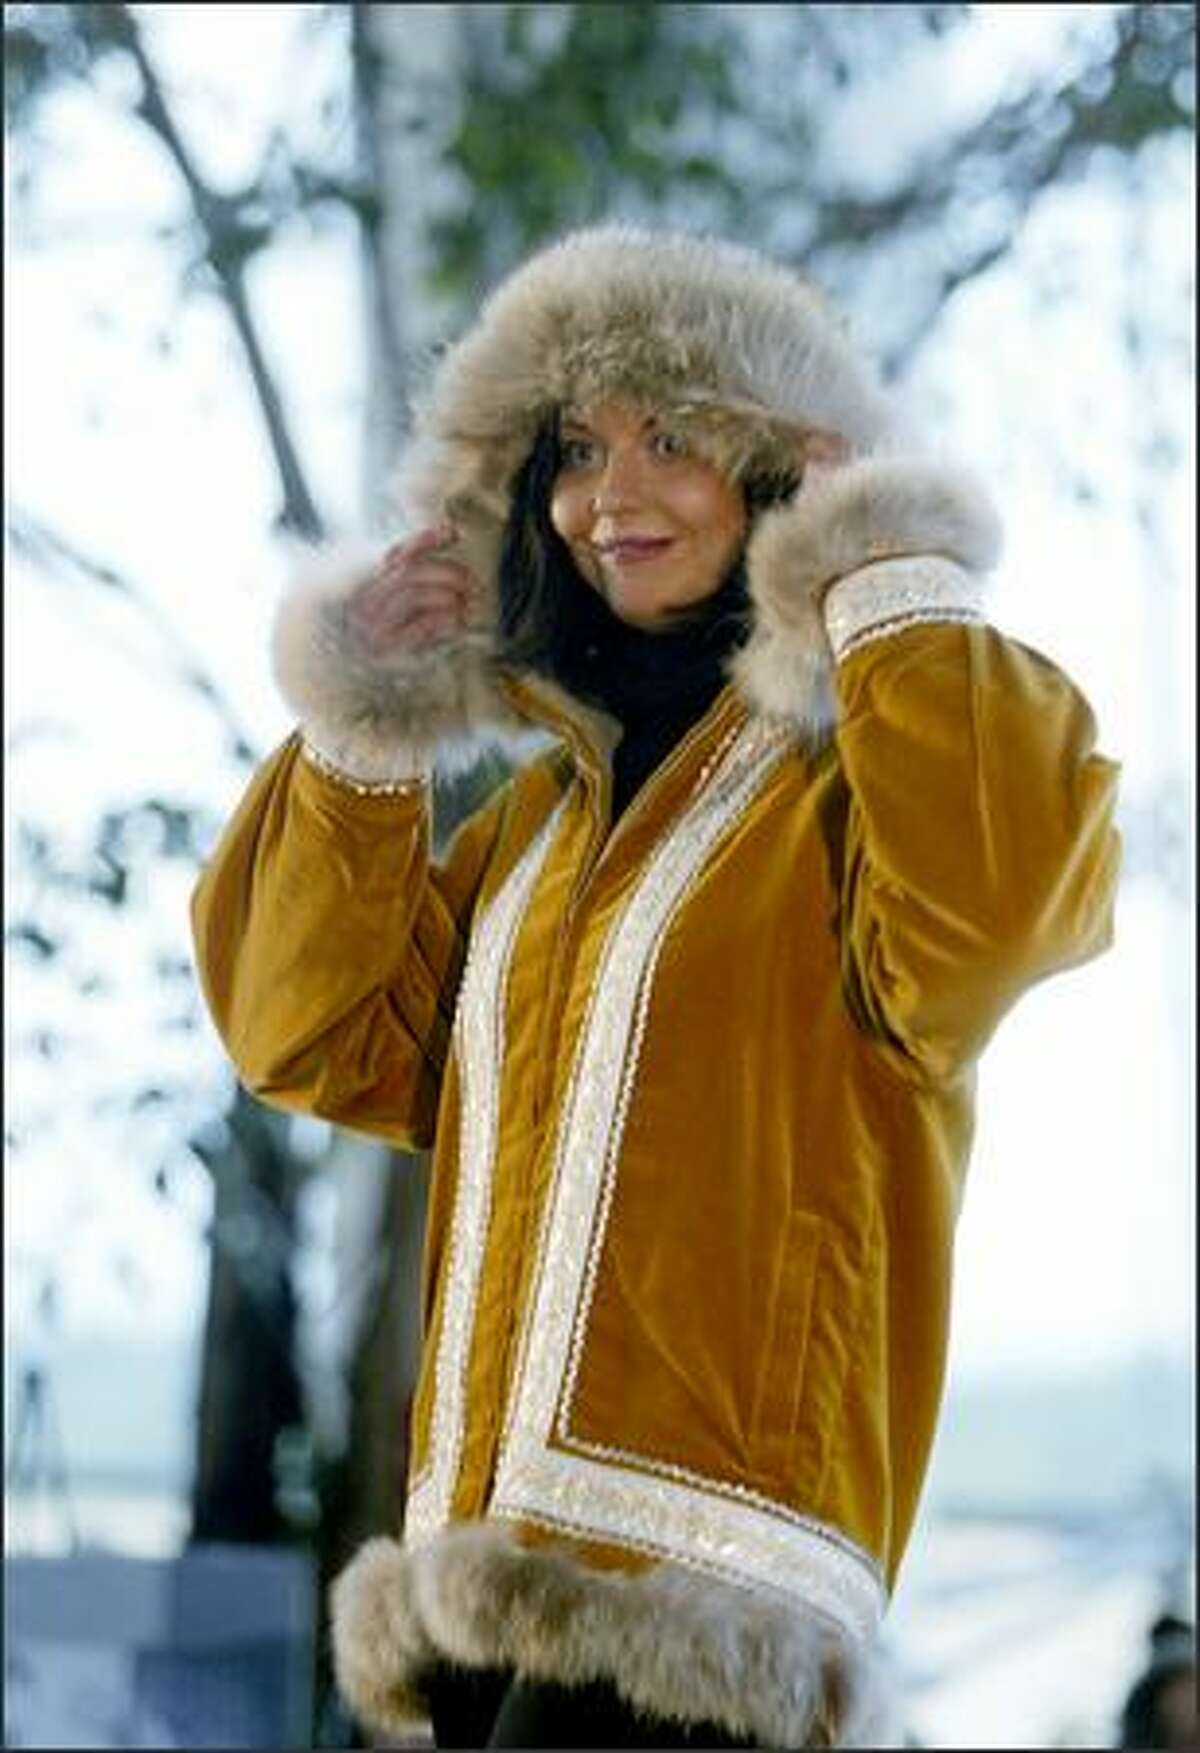 Alaska Airlines flight attendant Melissa Falcone models an Arctic Parka as worn by Alaska attendants in the 1950s and 60s during a fashion show of uniforms worn by attendants in decades past at the Seattle-Tacoma International Airport's Central Terminal on Thursday.